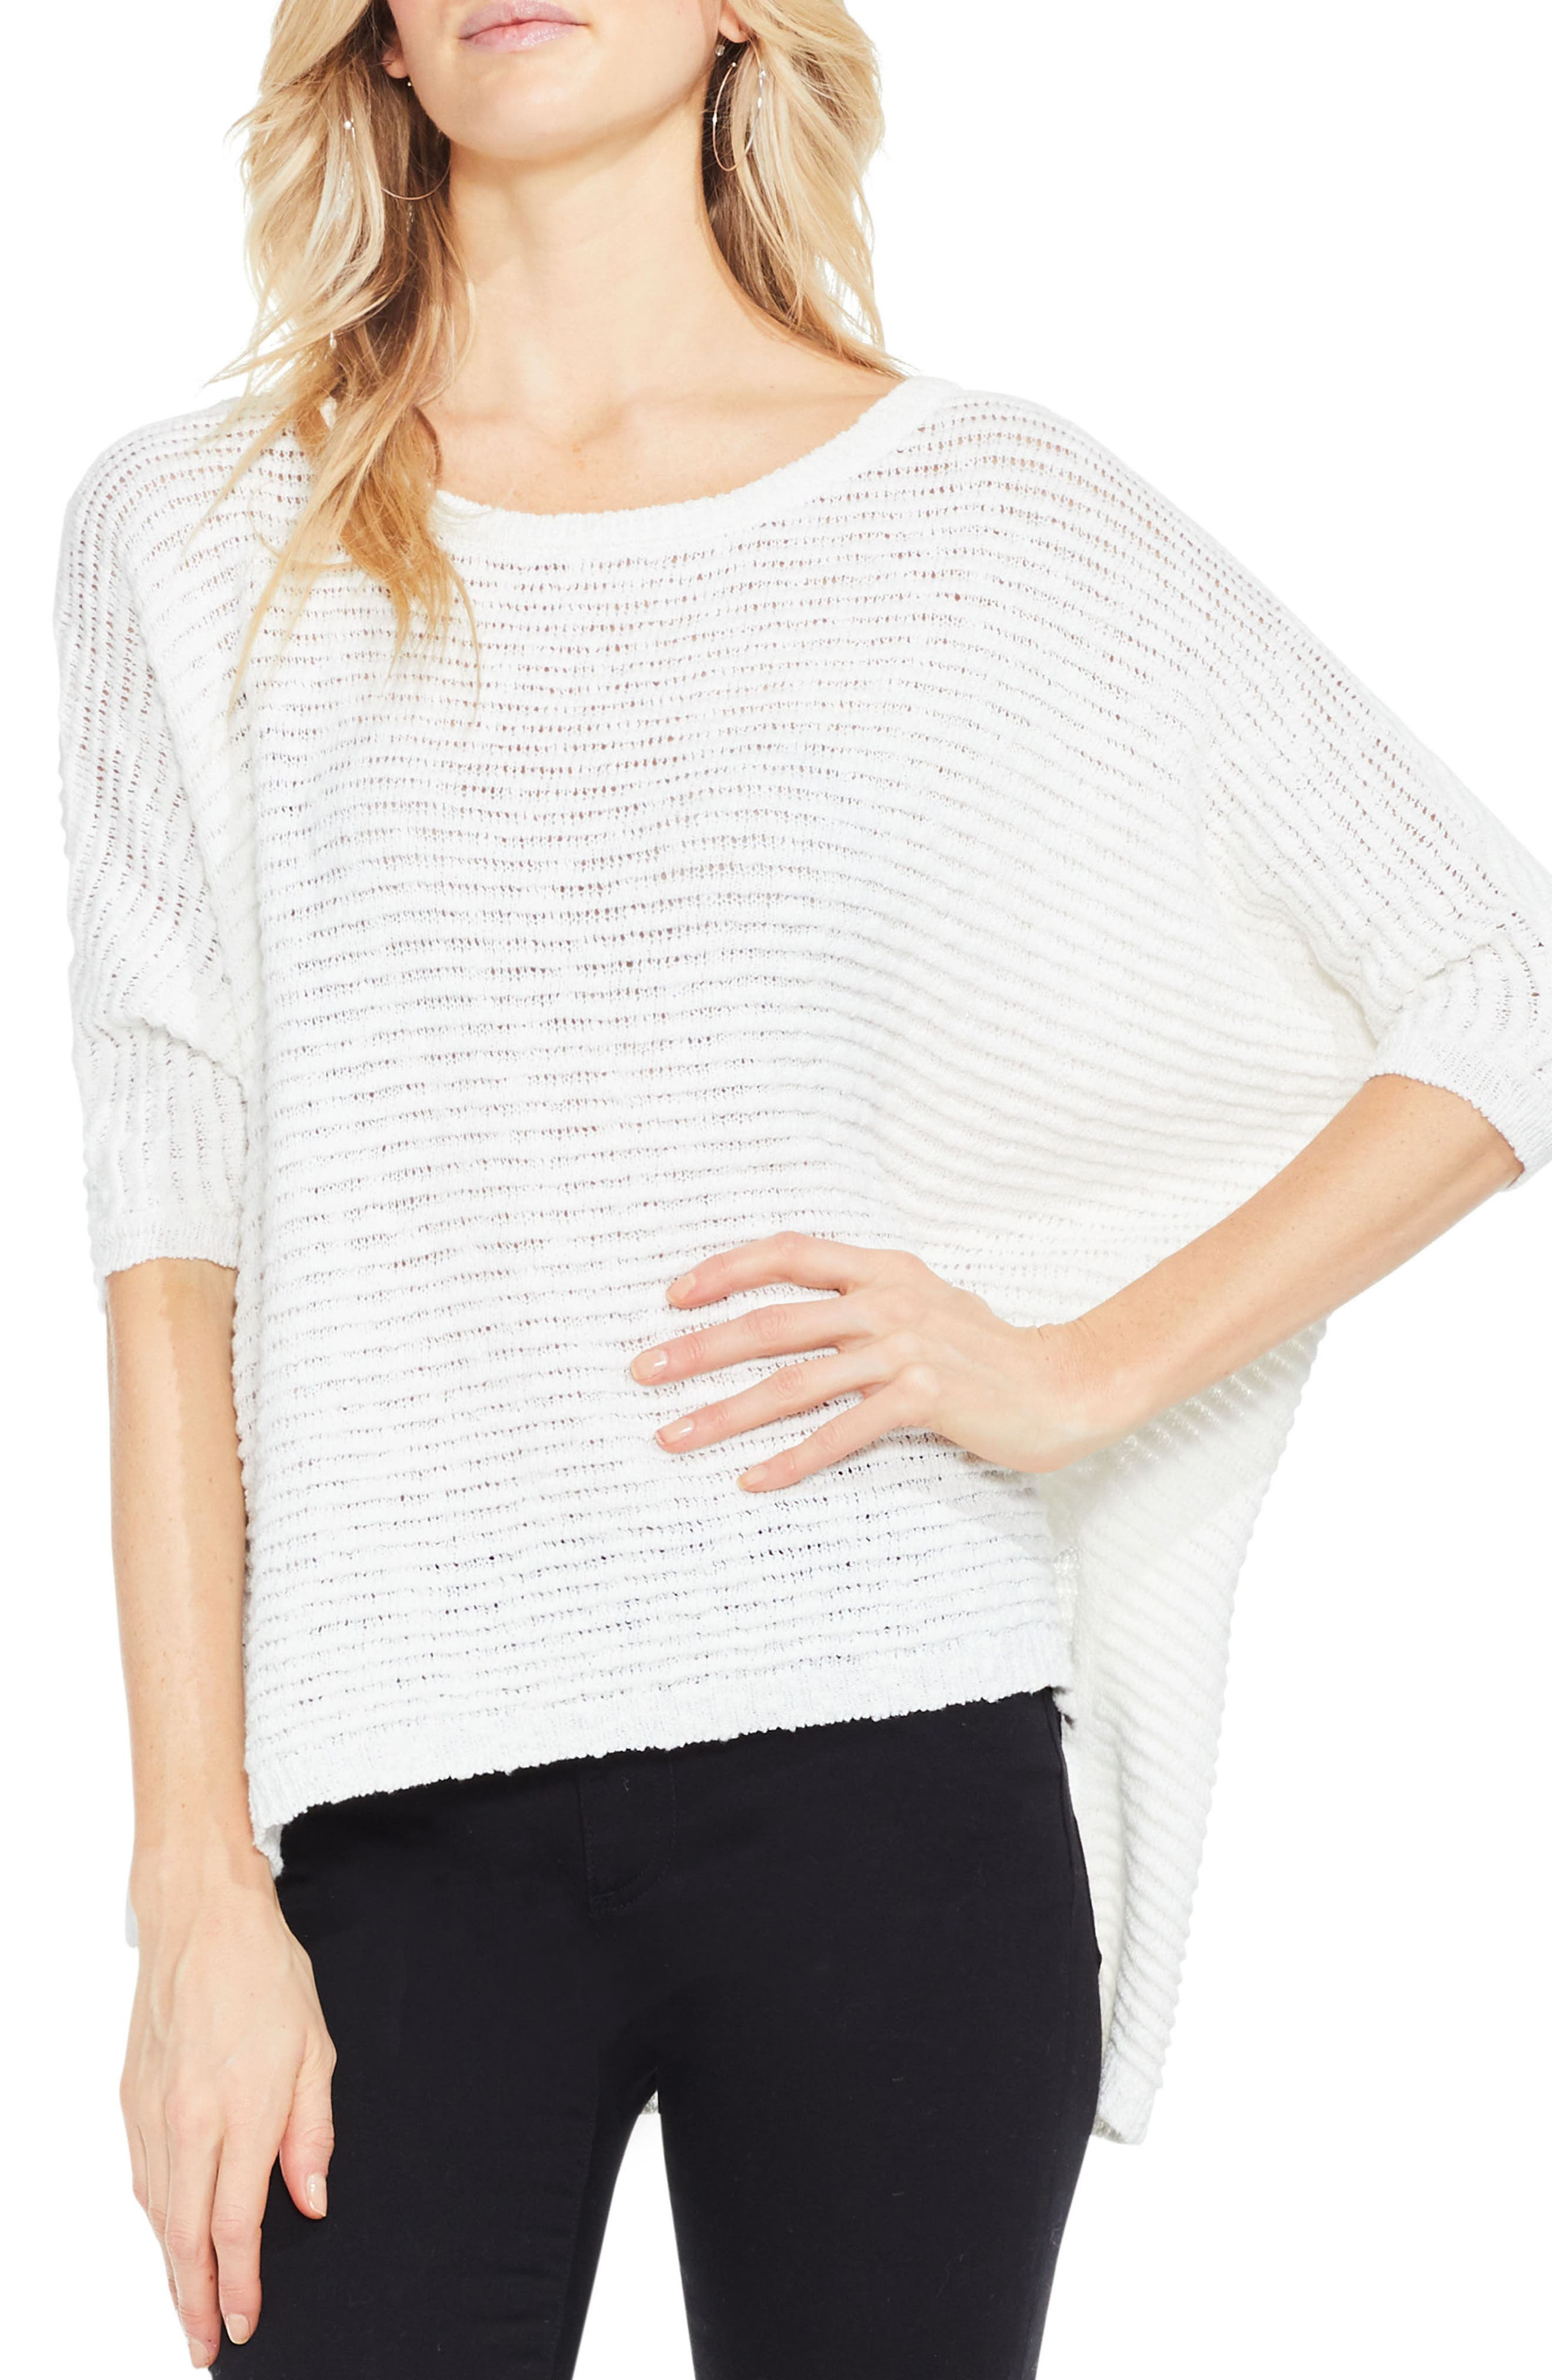 Main Image - Two by Vince Camuto Crinkle Yarn Dolman Sleeve Top